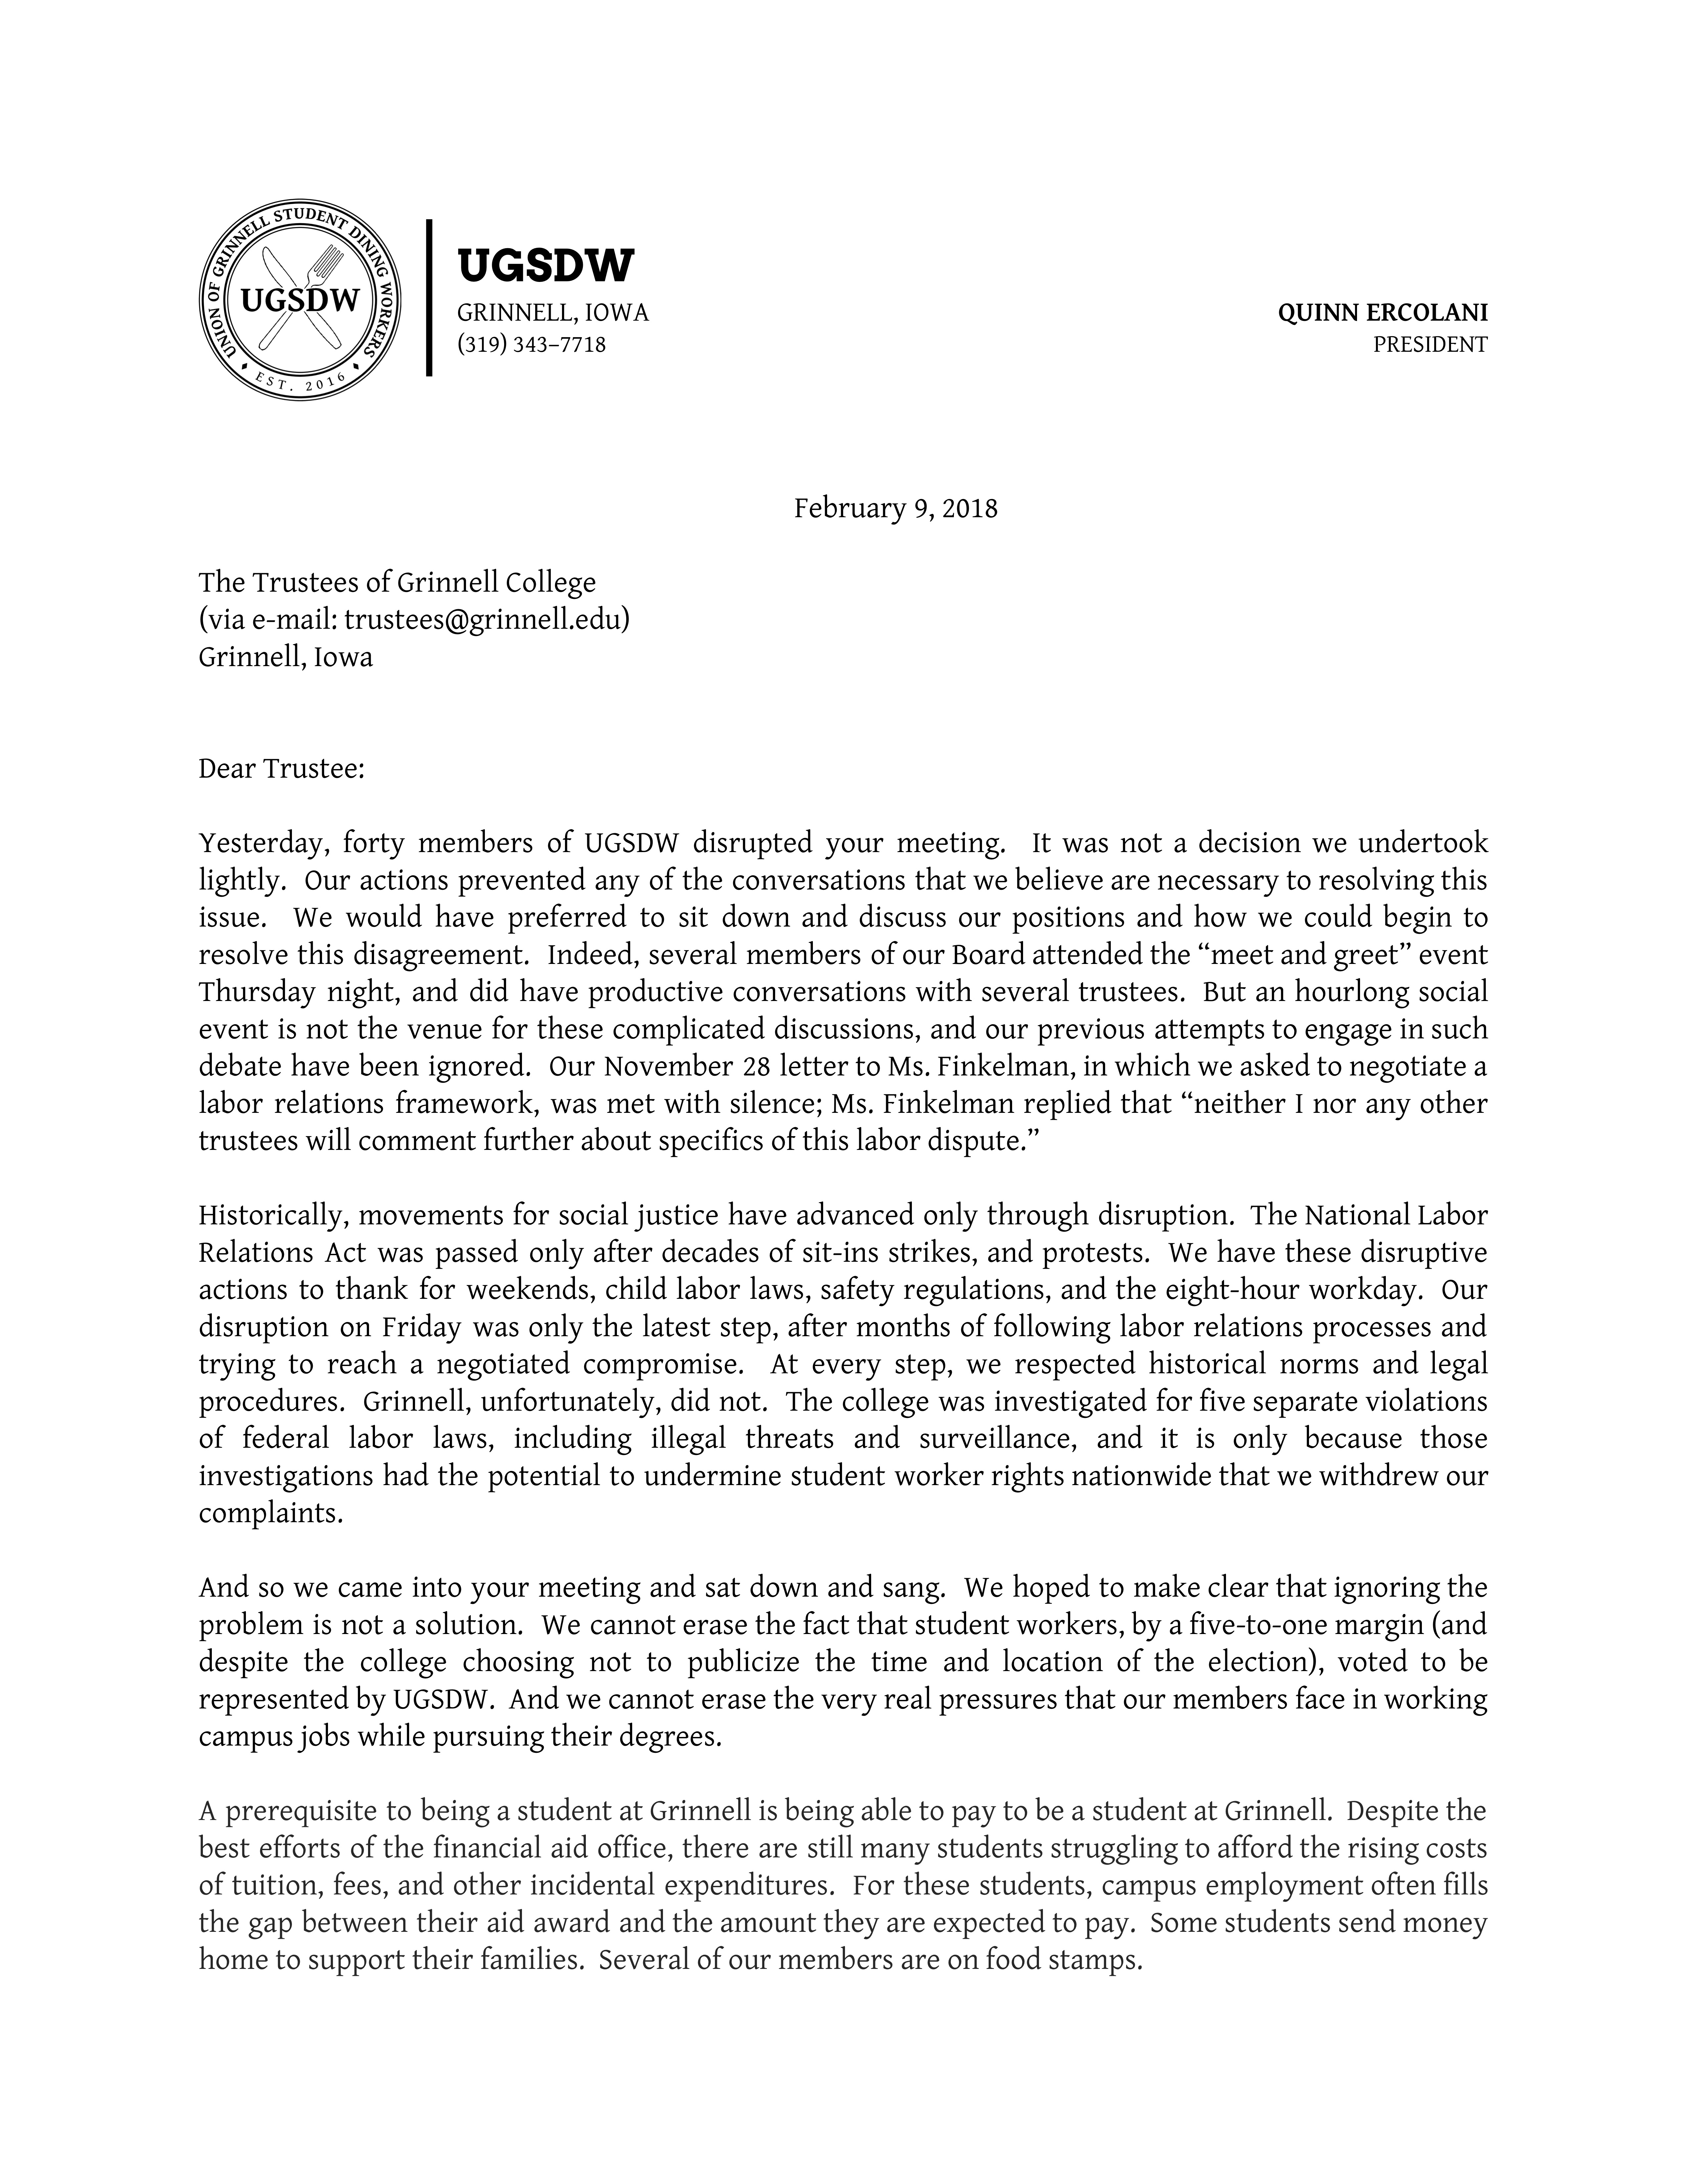 Letter sent to Grinnell's Board of Trustees